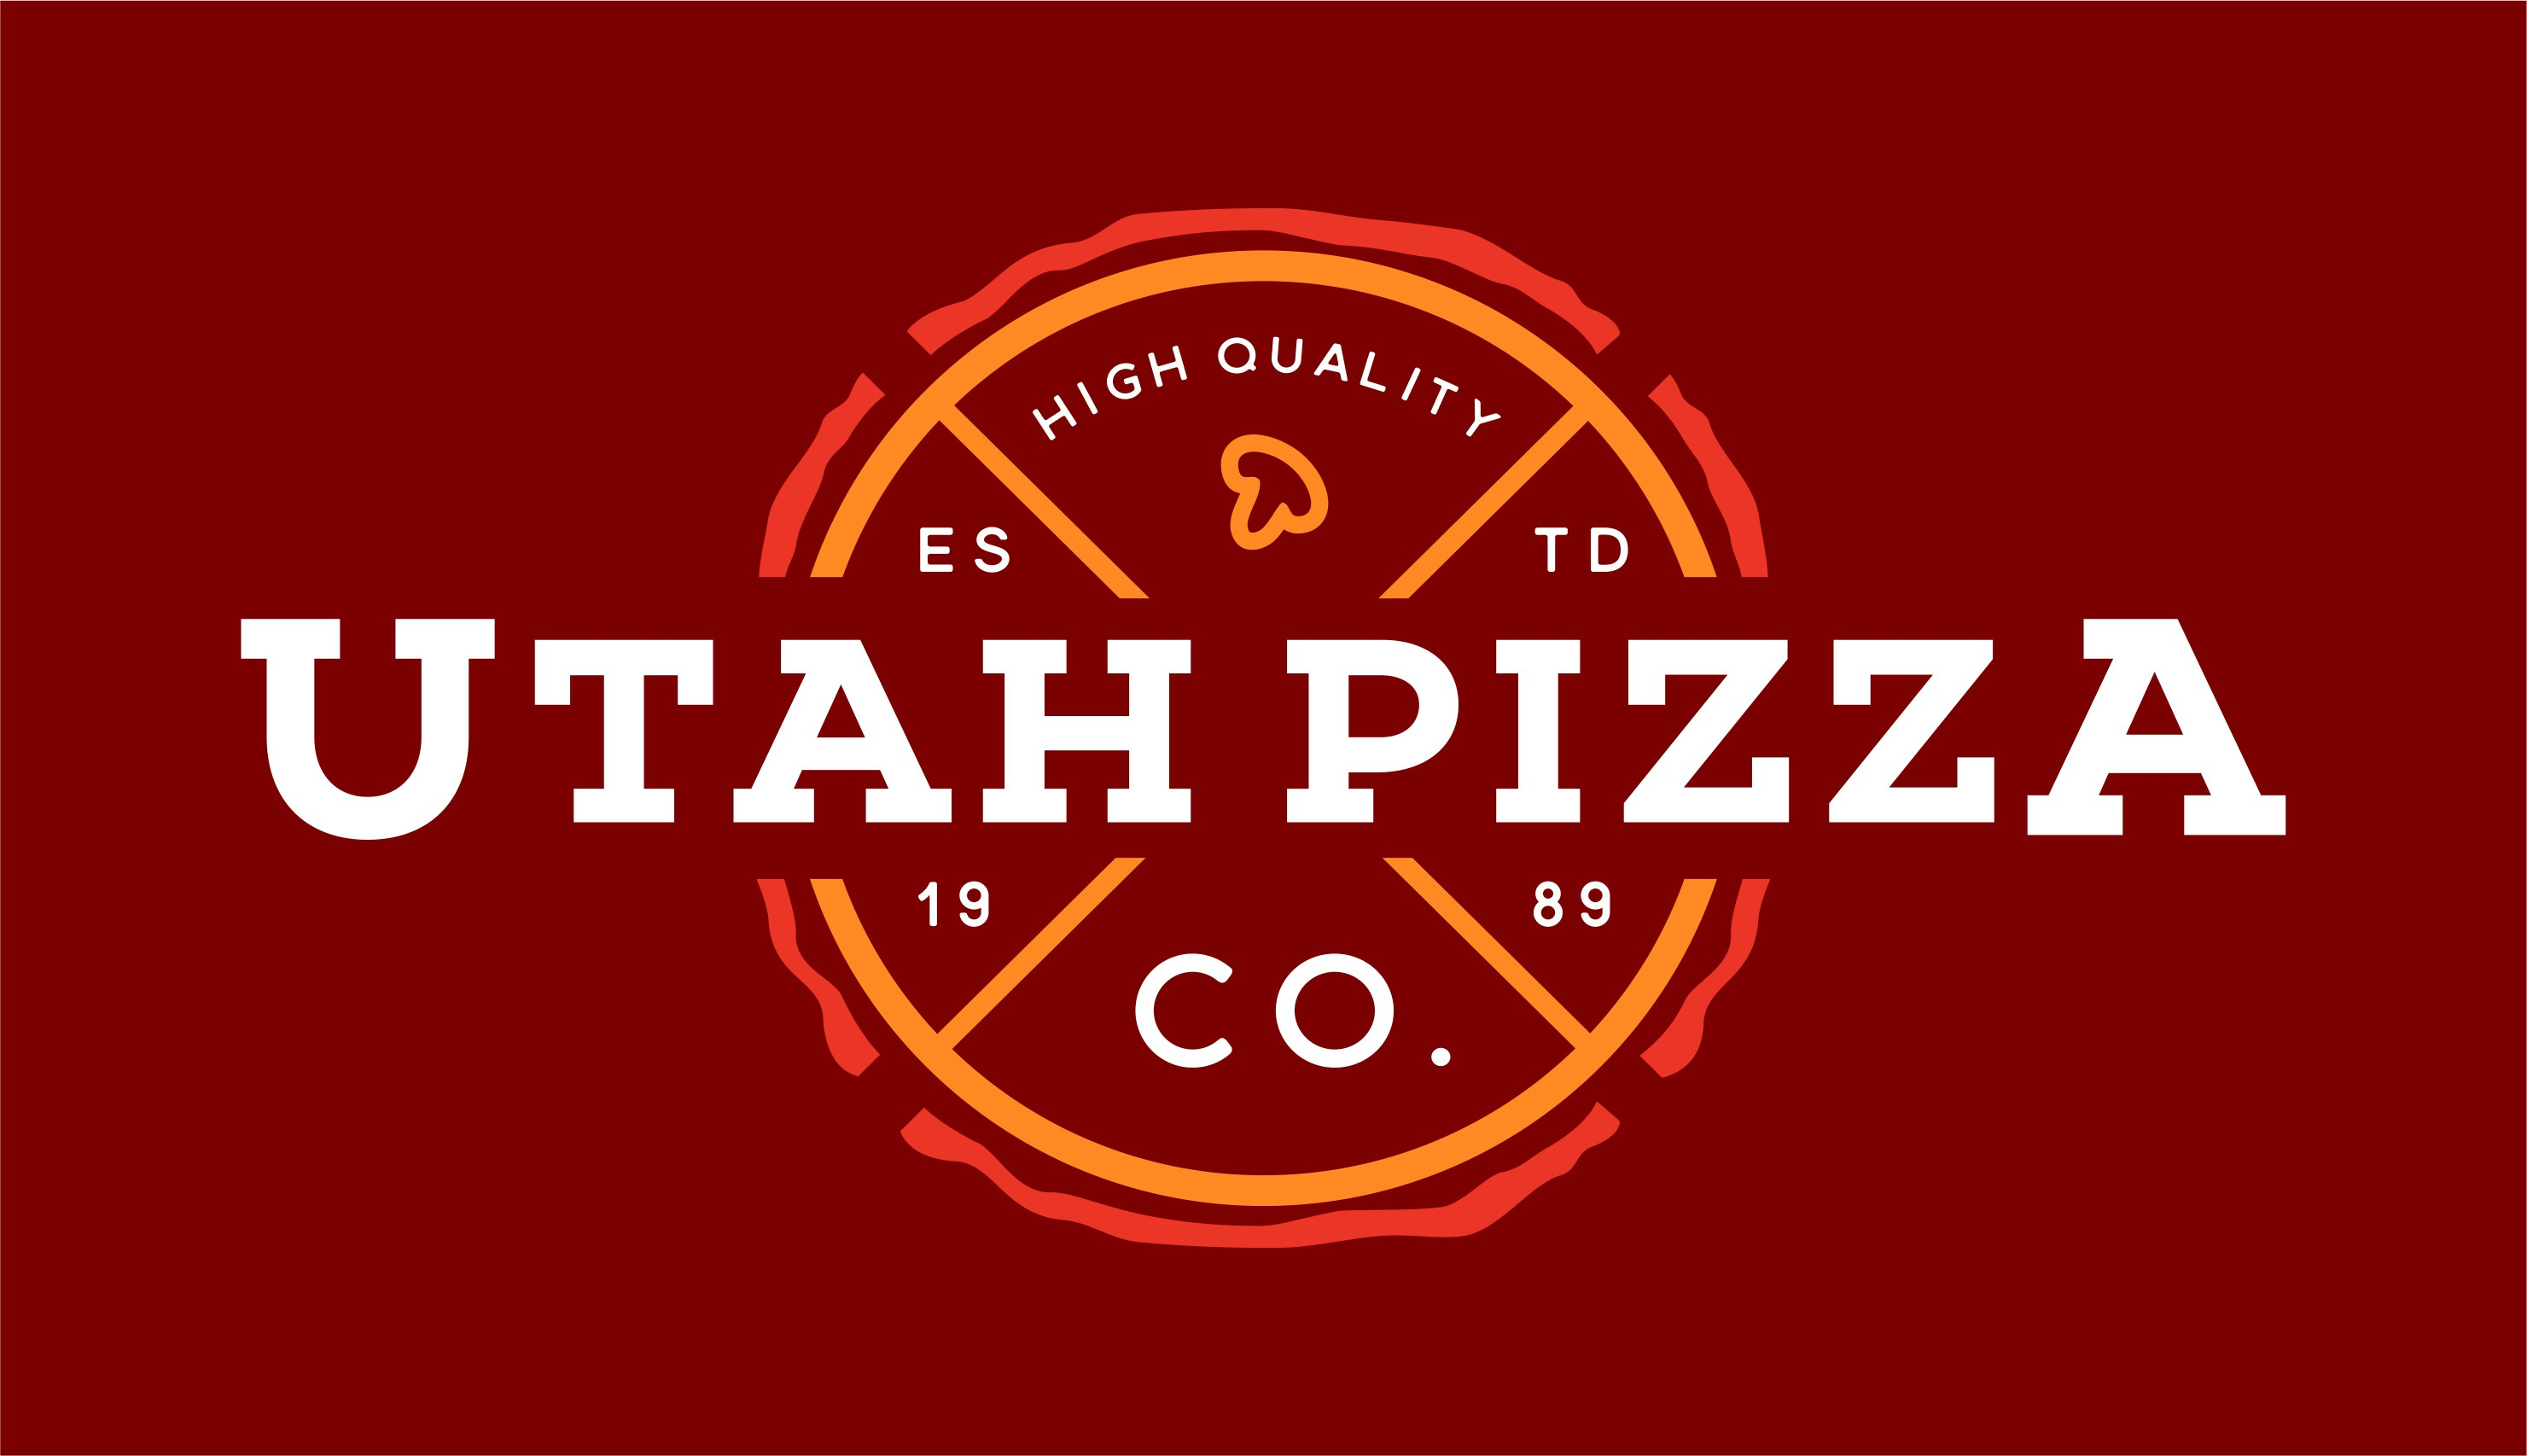 High Quality Pizza Place Logo: Something original, not busy, clean, and non-cliche.